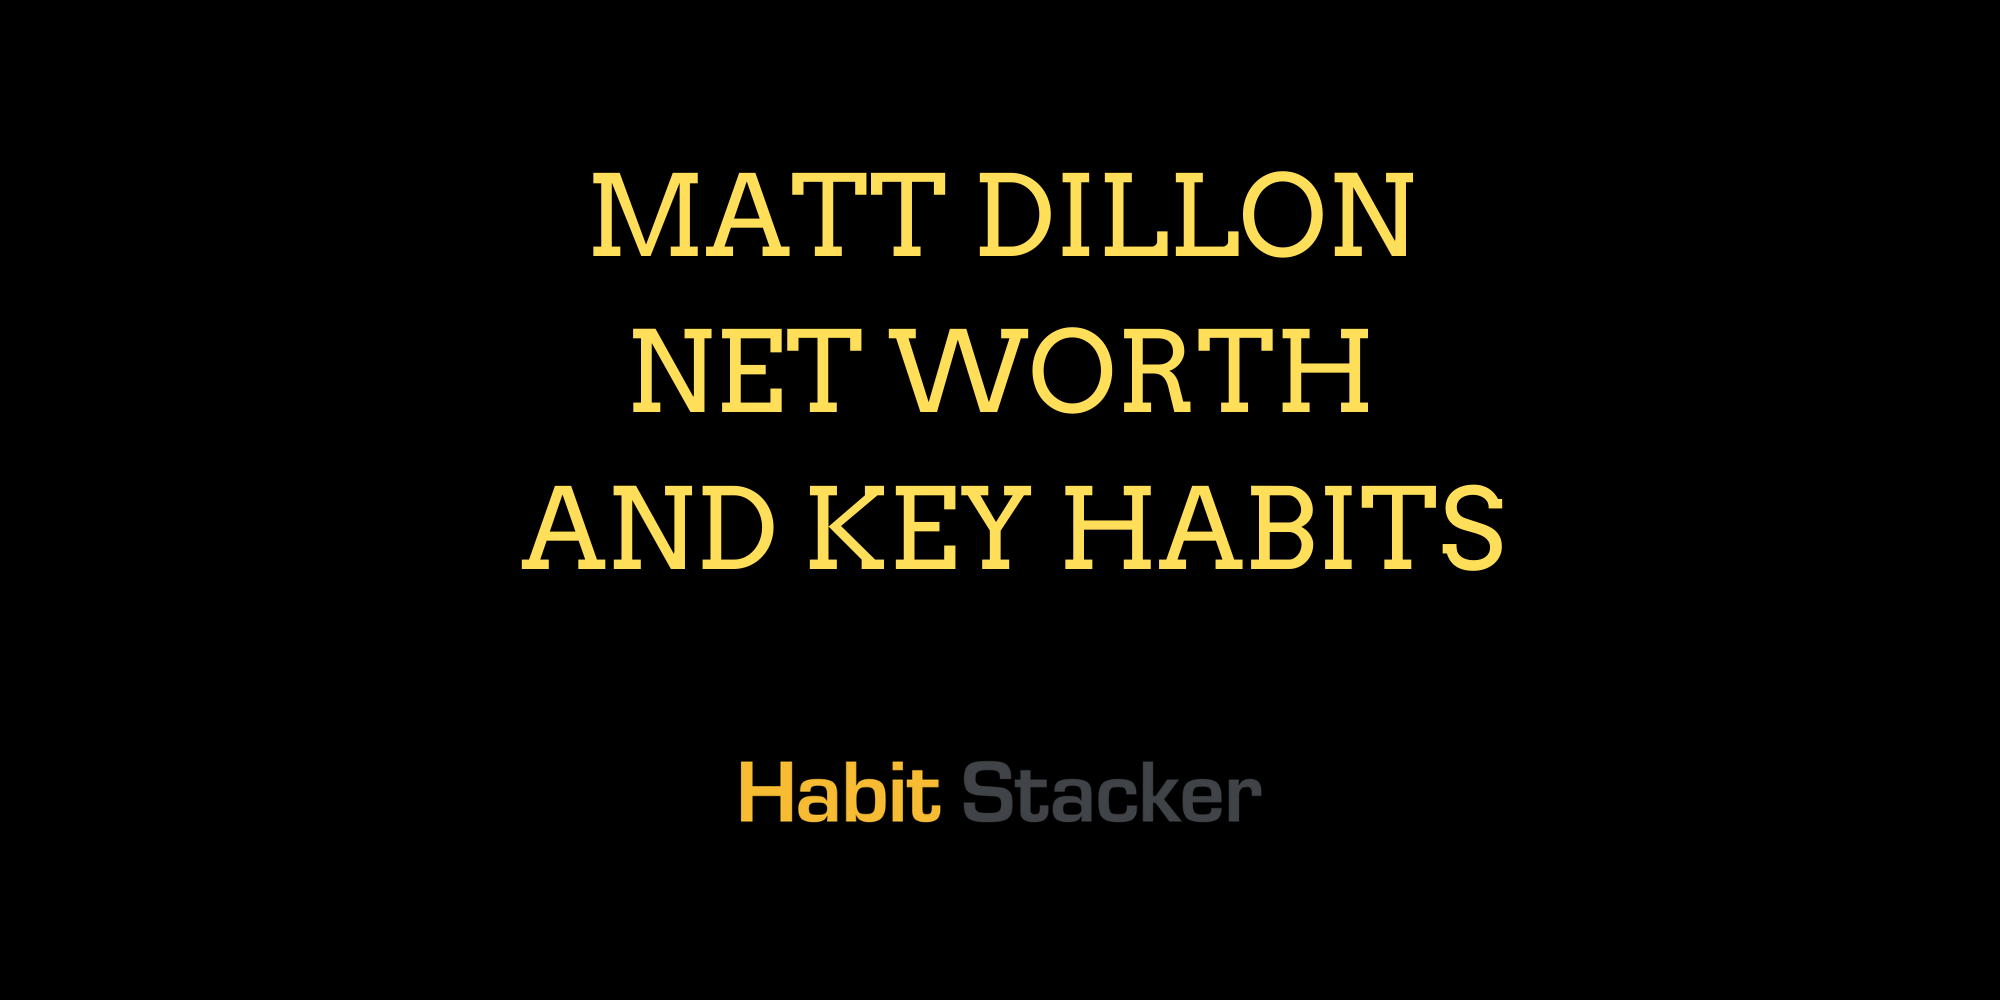 Matt Dillon Net Worth and Key Habits